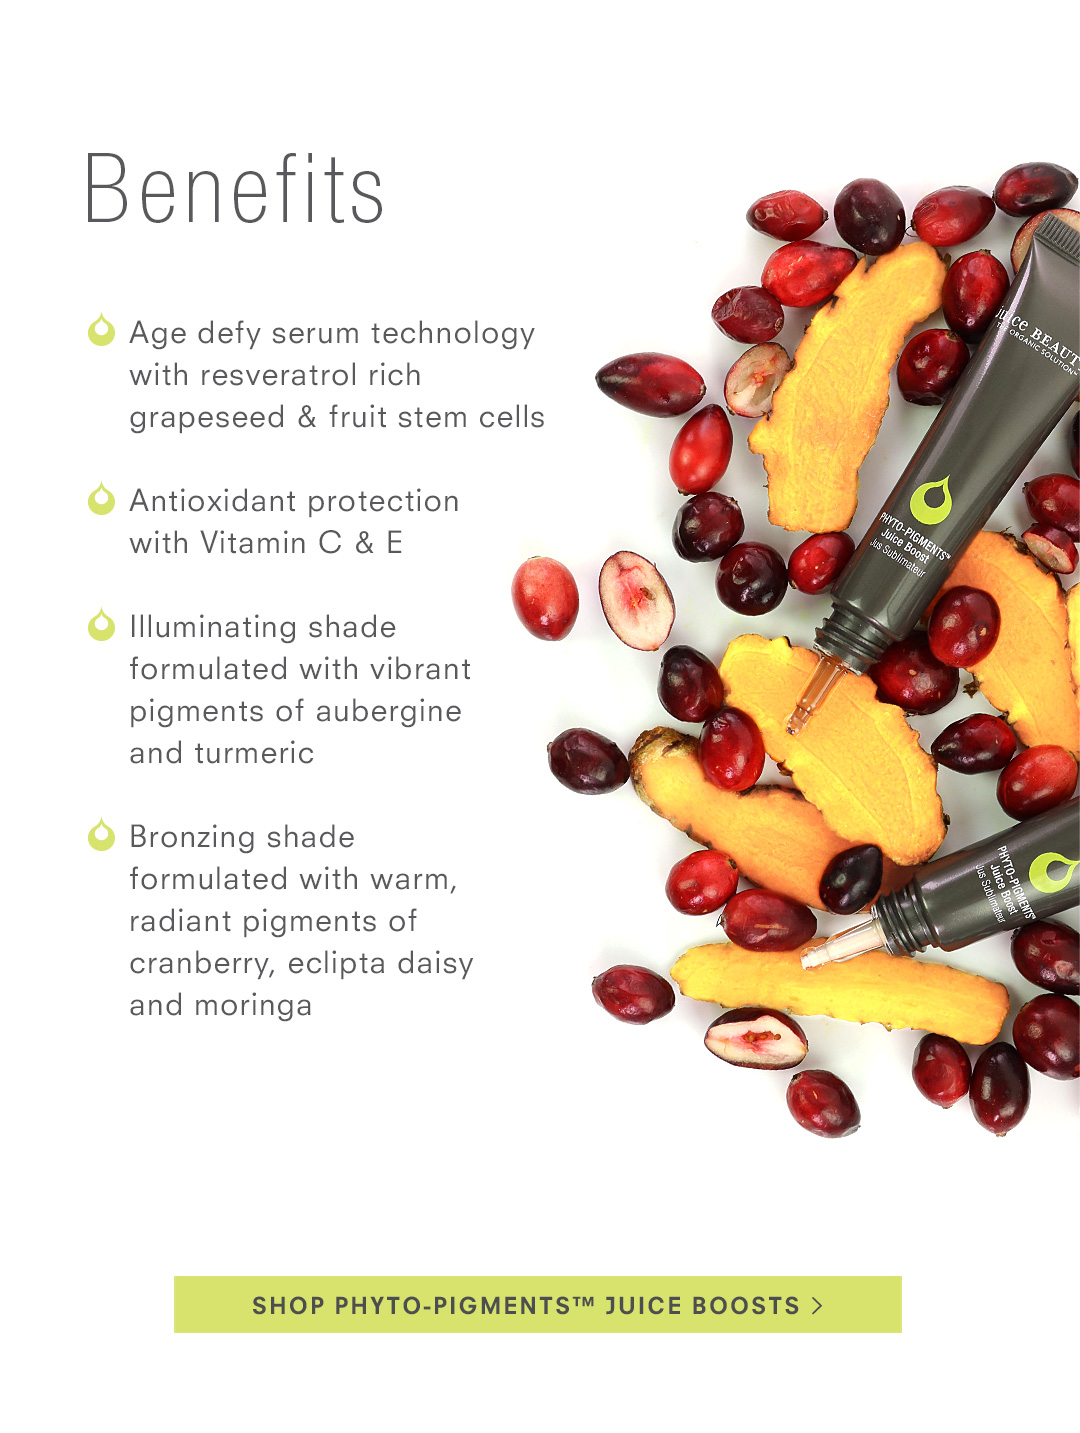 Benefits of PHYTO-PIGMENTS Juice Boost